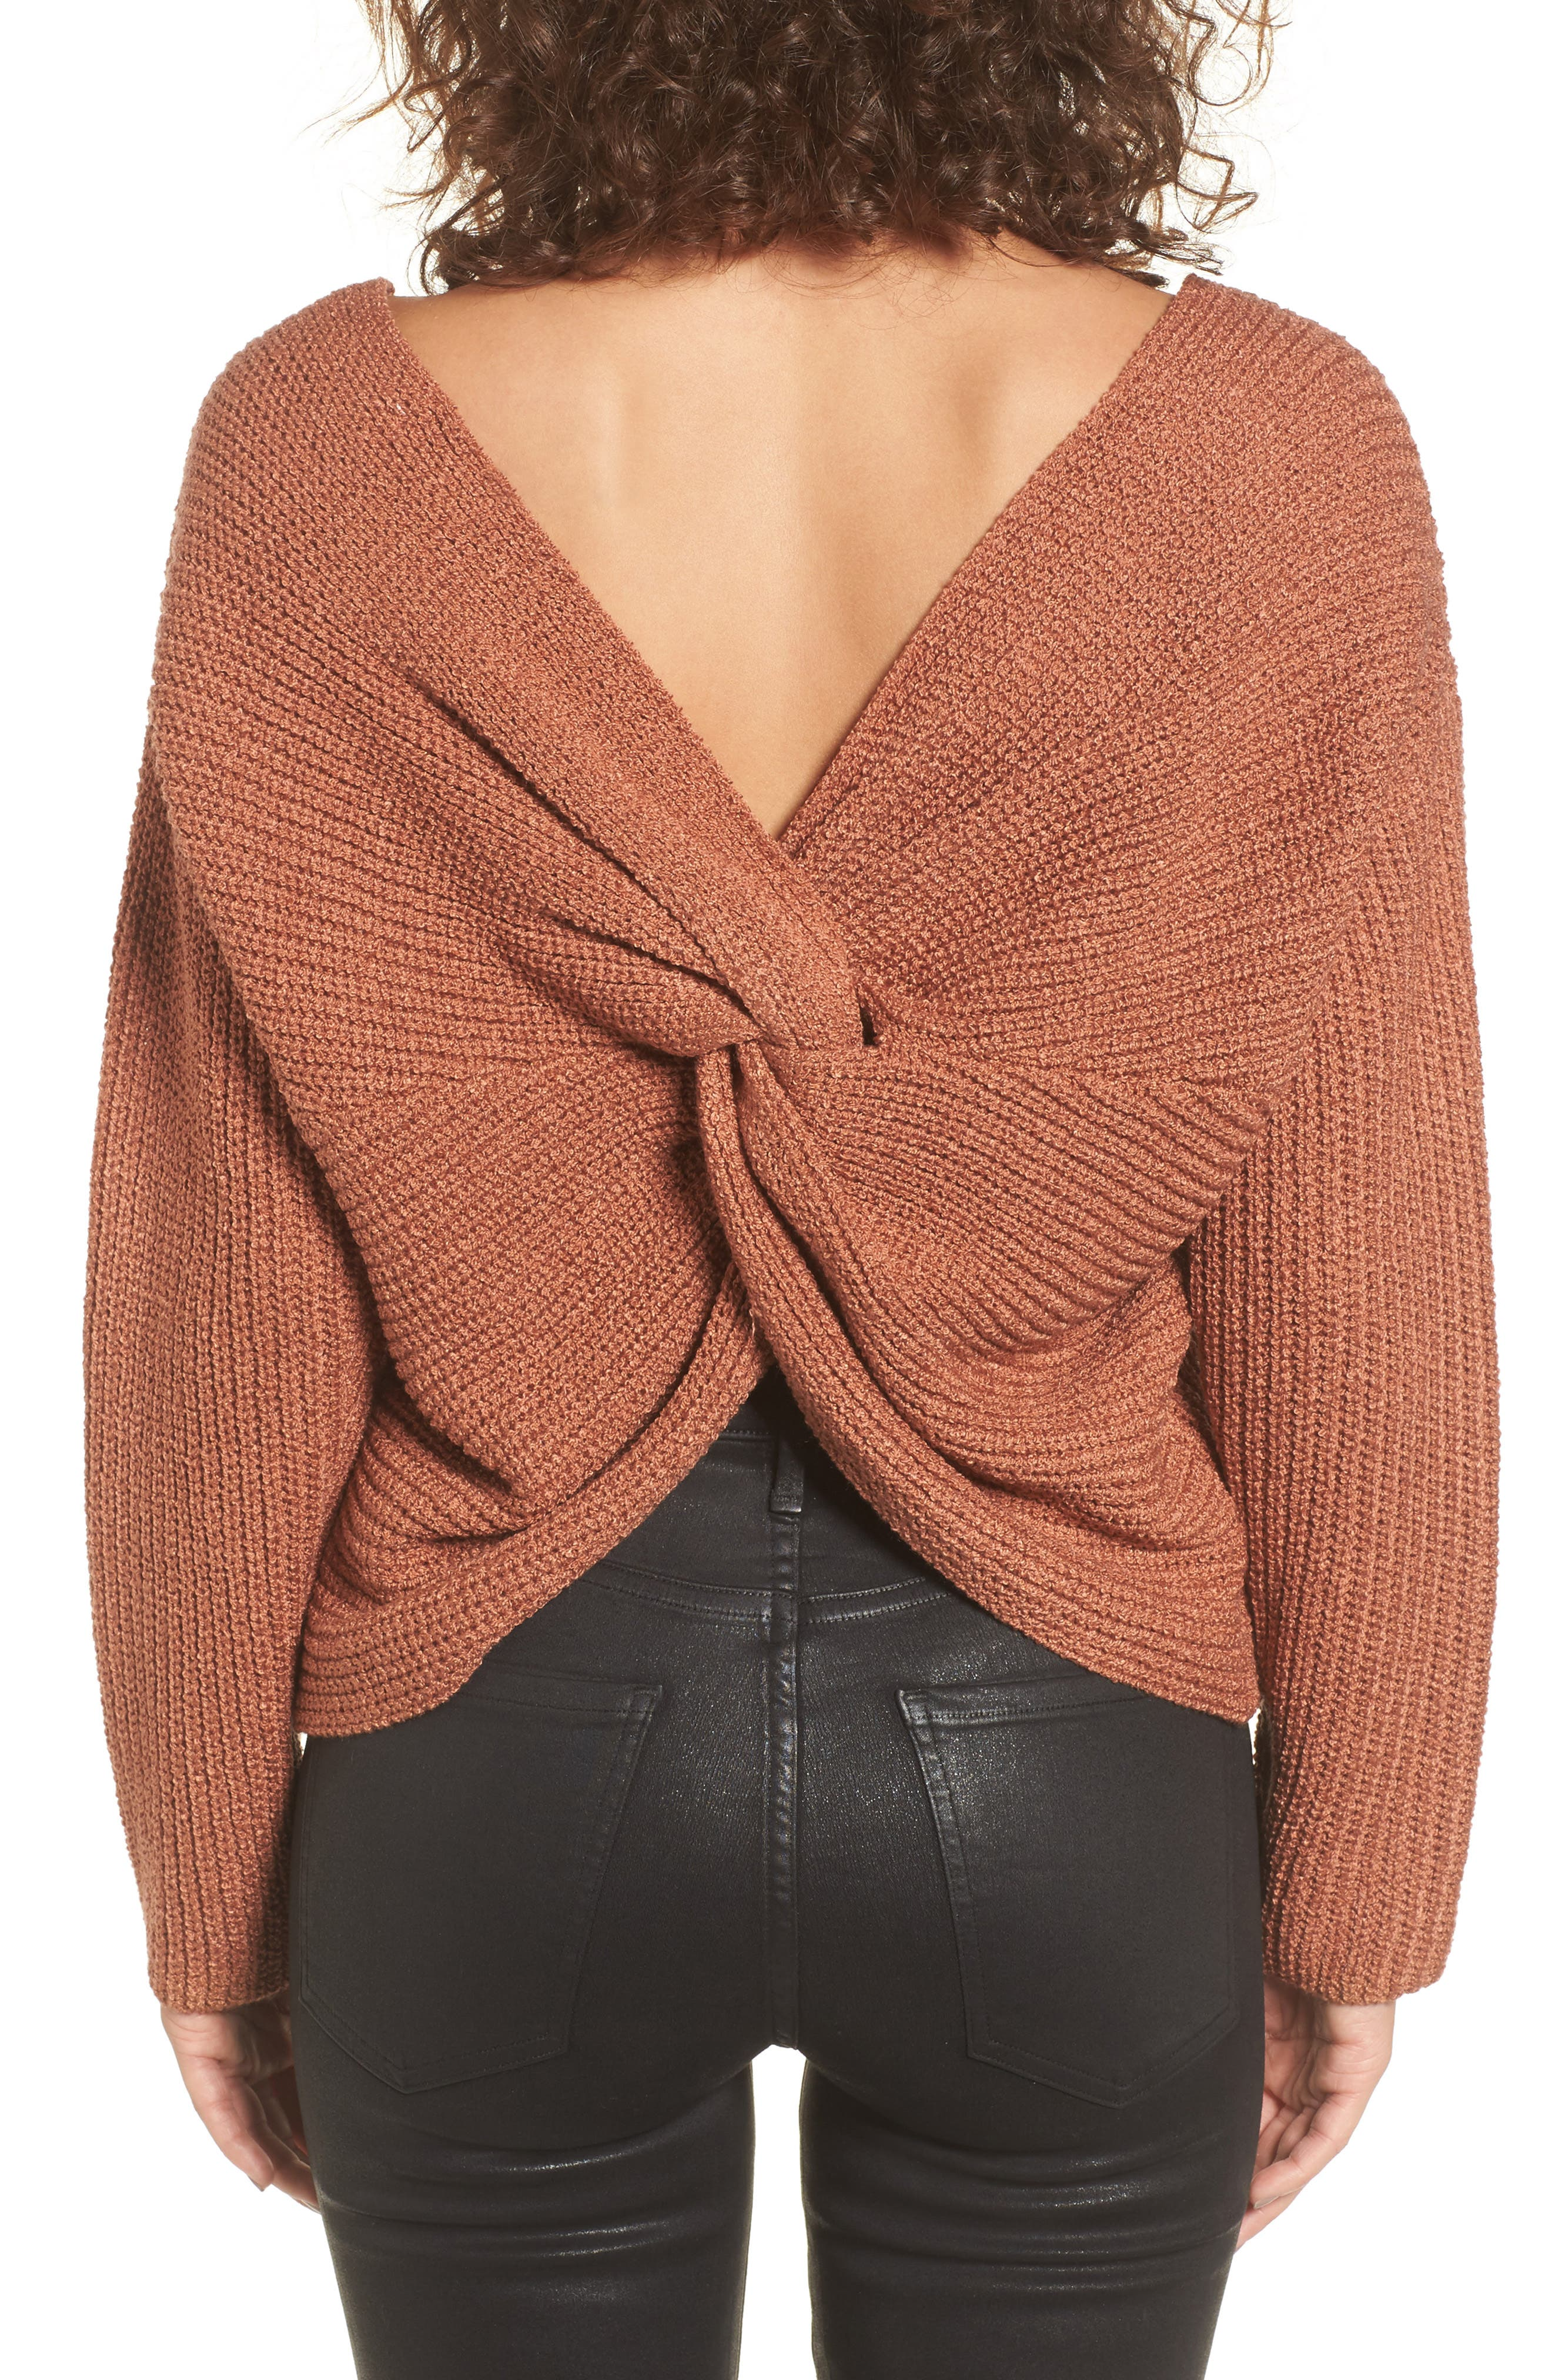 Alternate Image 1 Selected - ASTR the Label Twist Back Sweater